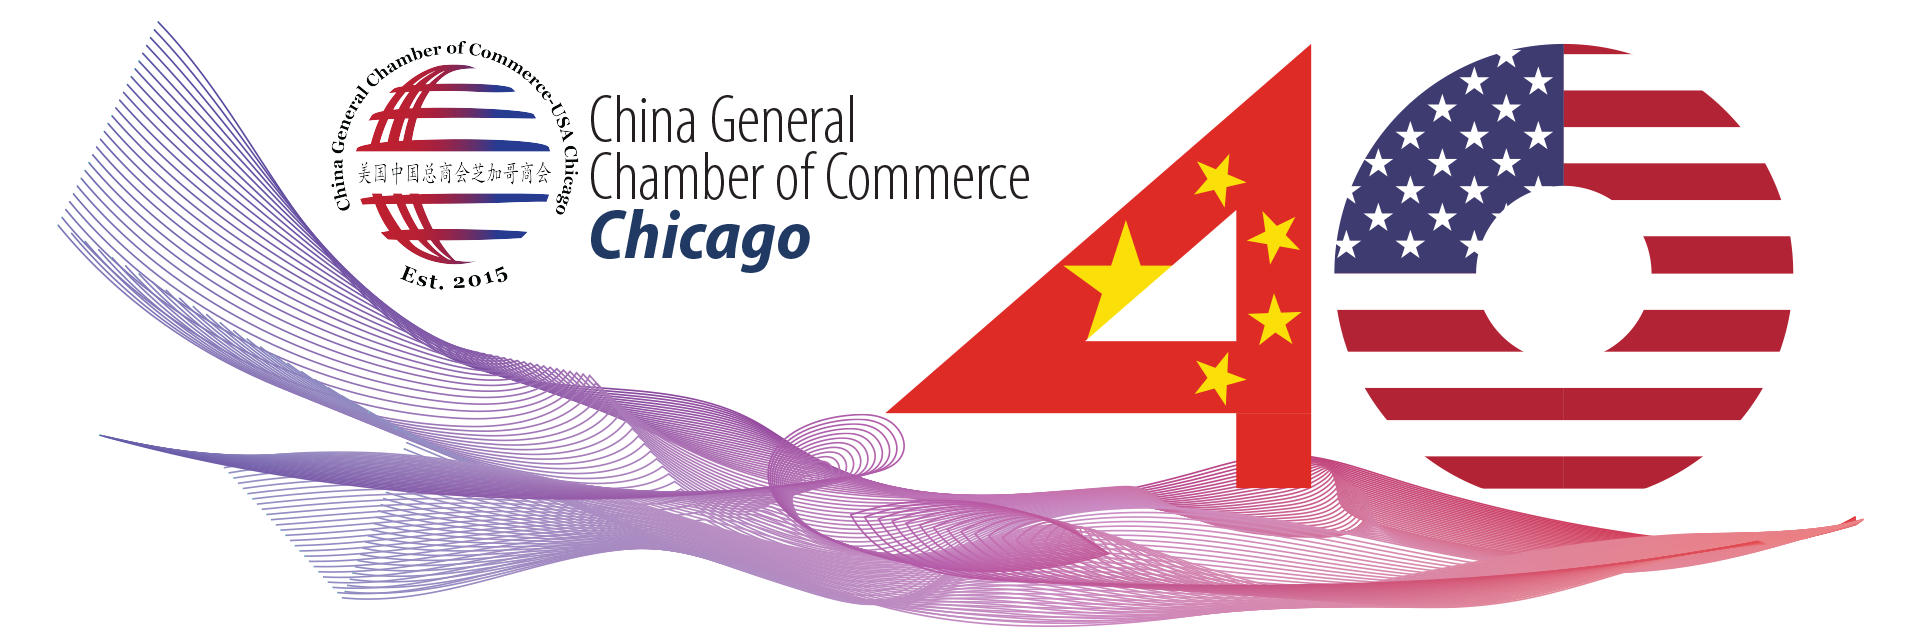 China General Chamber of Commerce U.S.A – Chicago